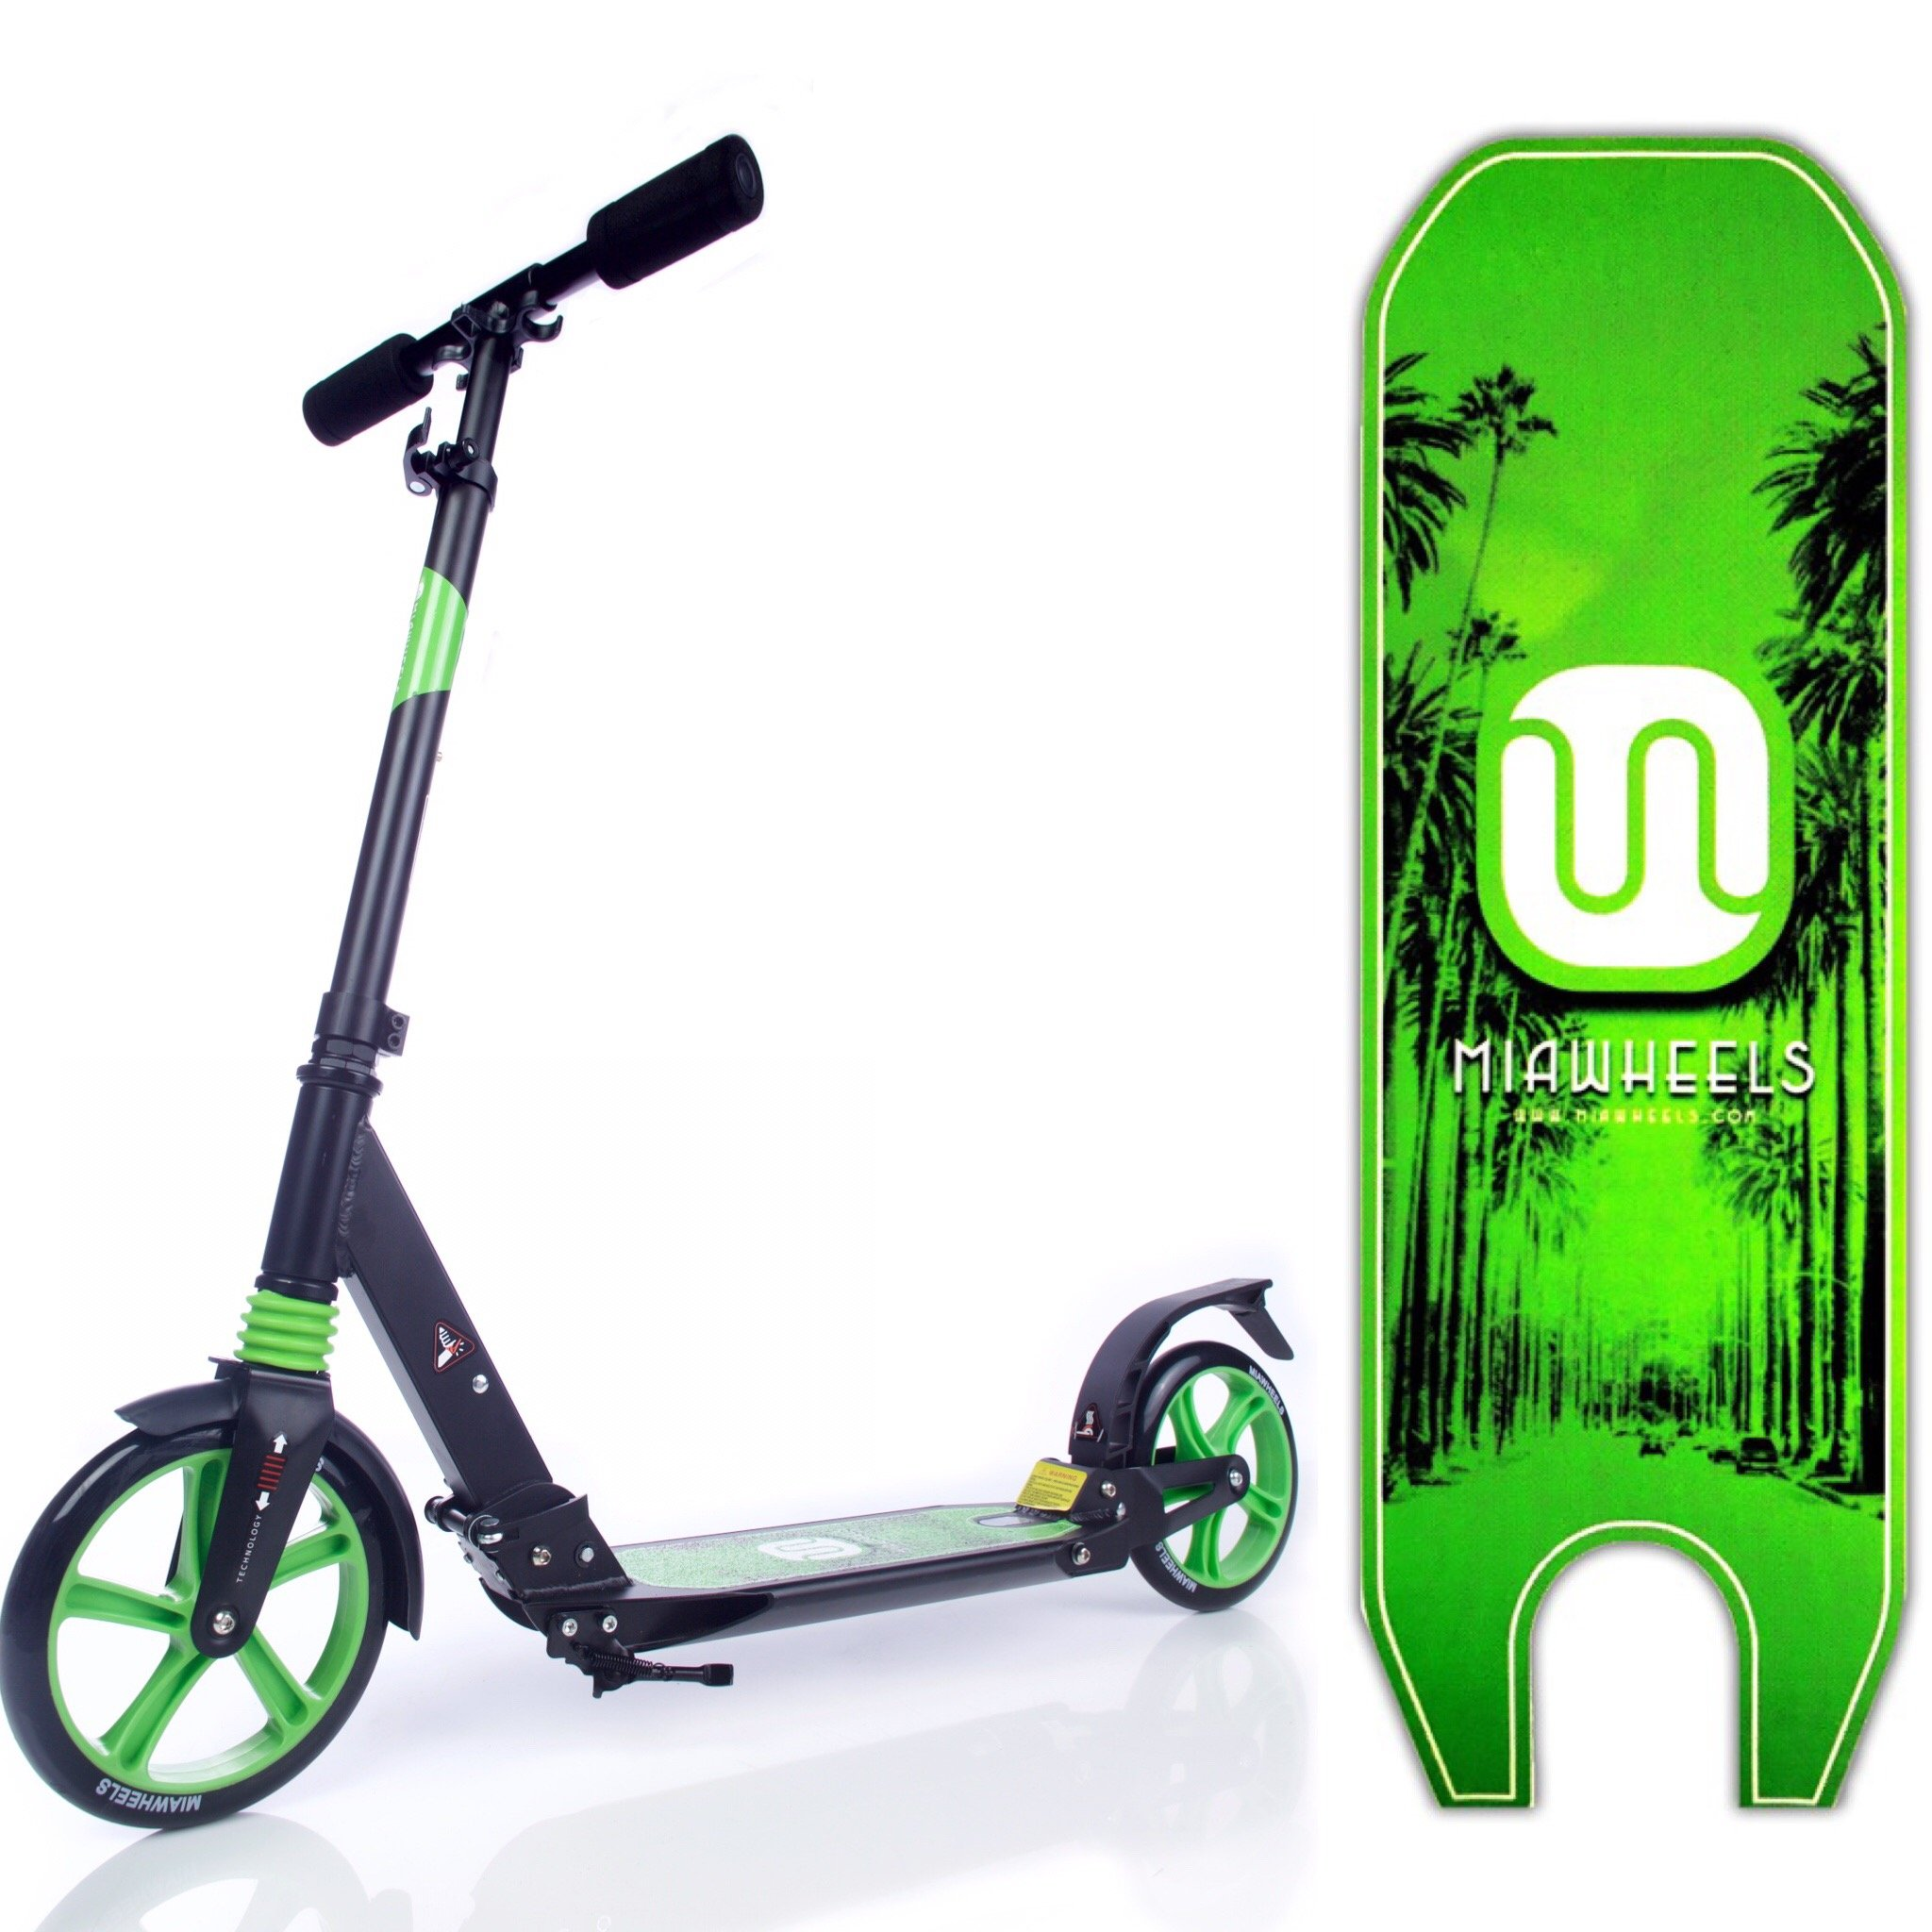 MIAWHEELS Black/Green Adjustable & Foldable + Suspension+ Strap+Reflective+ Long Rear Brake, Aluminium Kick Scooter